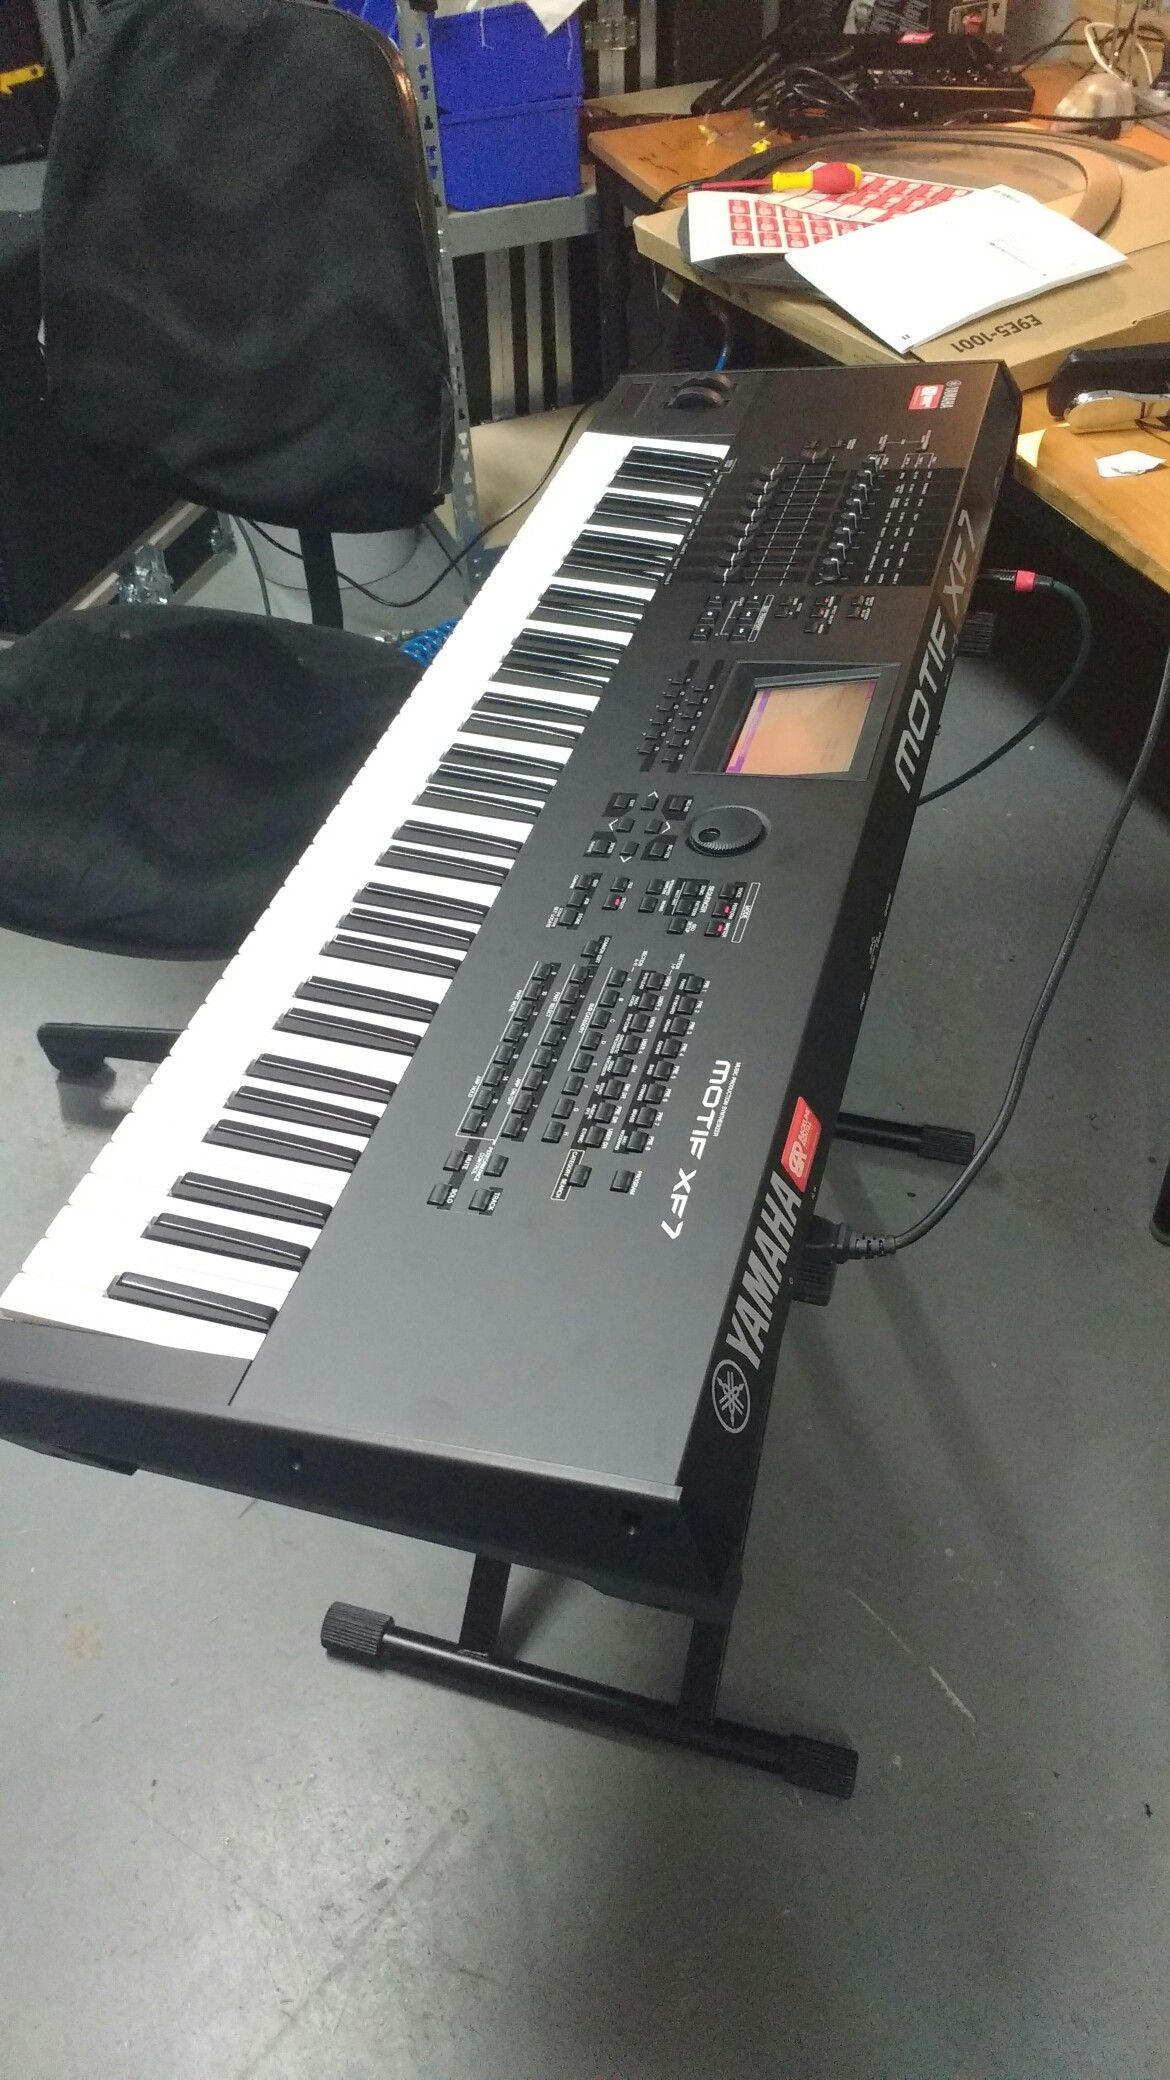 Yamaha Motif XF 7 | Music Production Hardware in 2019